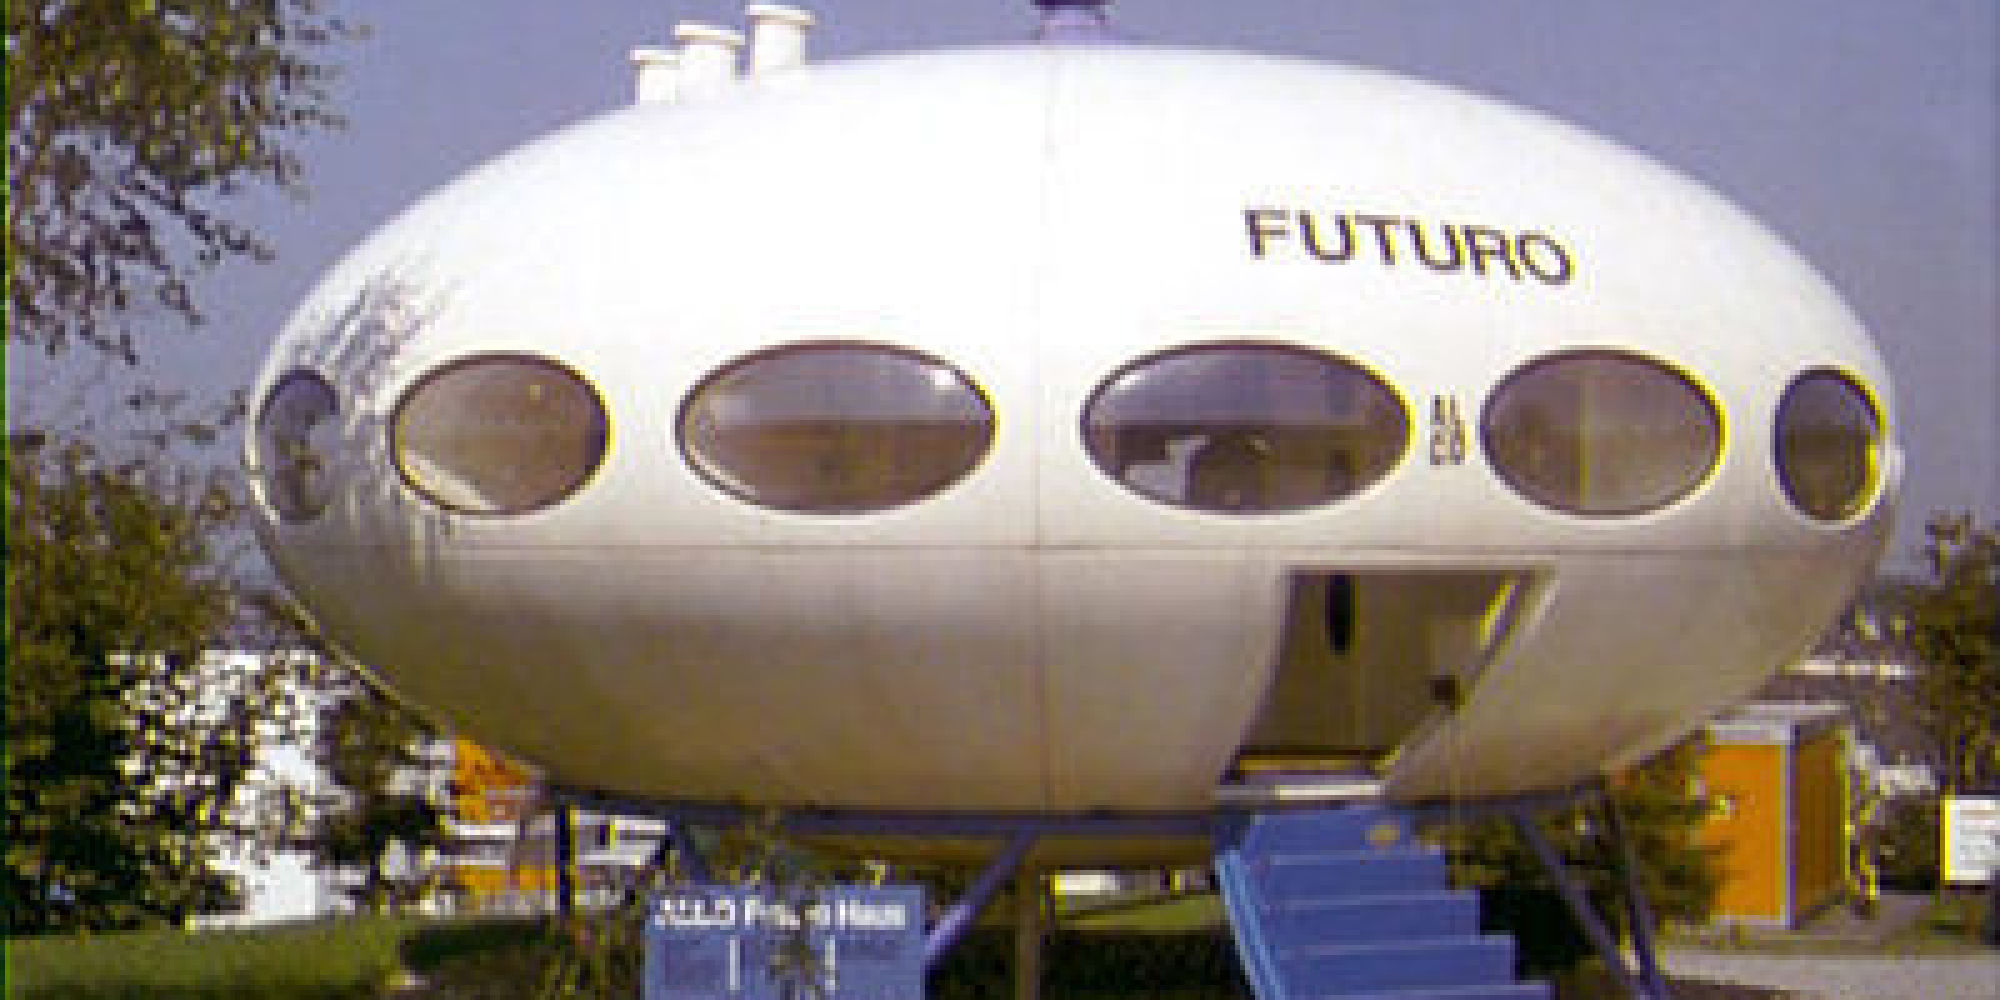 Rare futuro home pops up on ebay fulfilling your dream to live in an old star wars ride photos huffpost